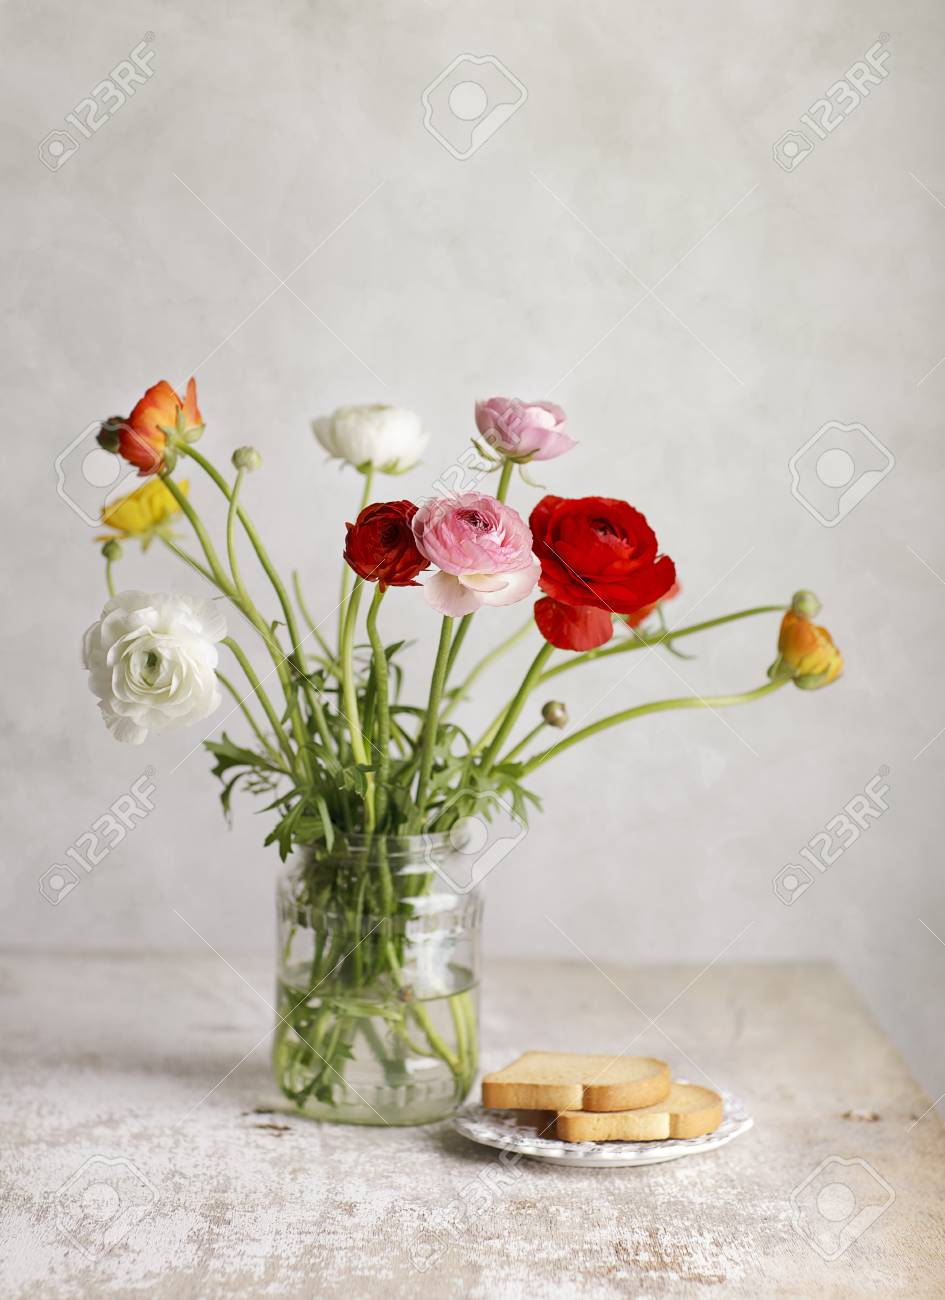 Studio Still Life with beautiful Persian Buttercup Flowers Stock Photo - 12944325